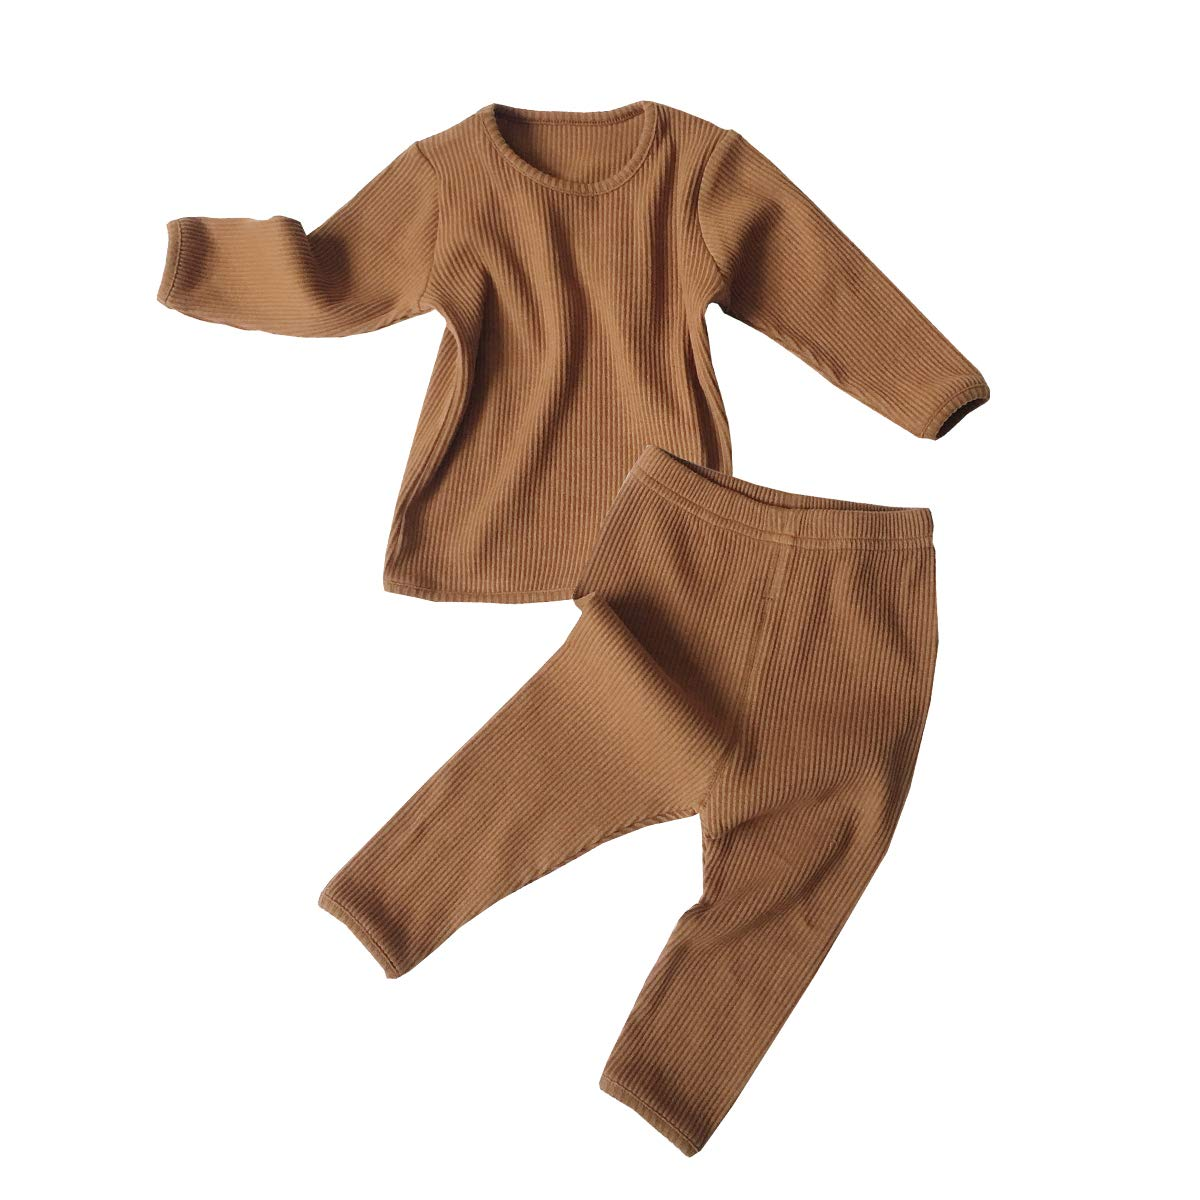 Toddler Baby Boys Girls Pajama Cotton Line Clothes Tee and Pants 2Pcs Sleepwear Set Solid Color Outfit